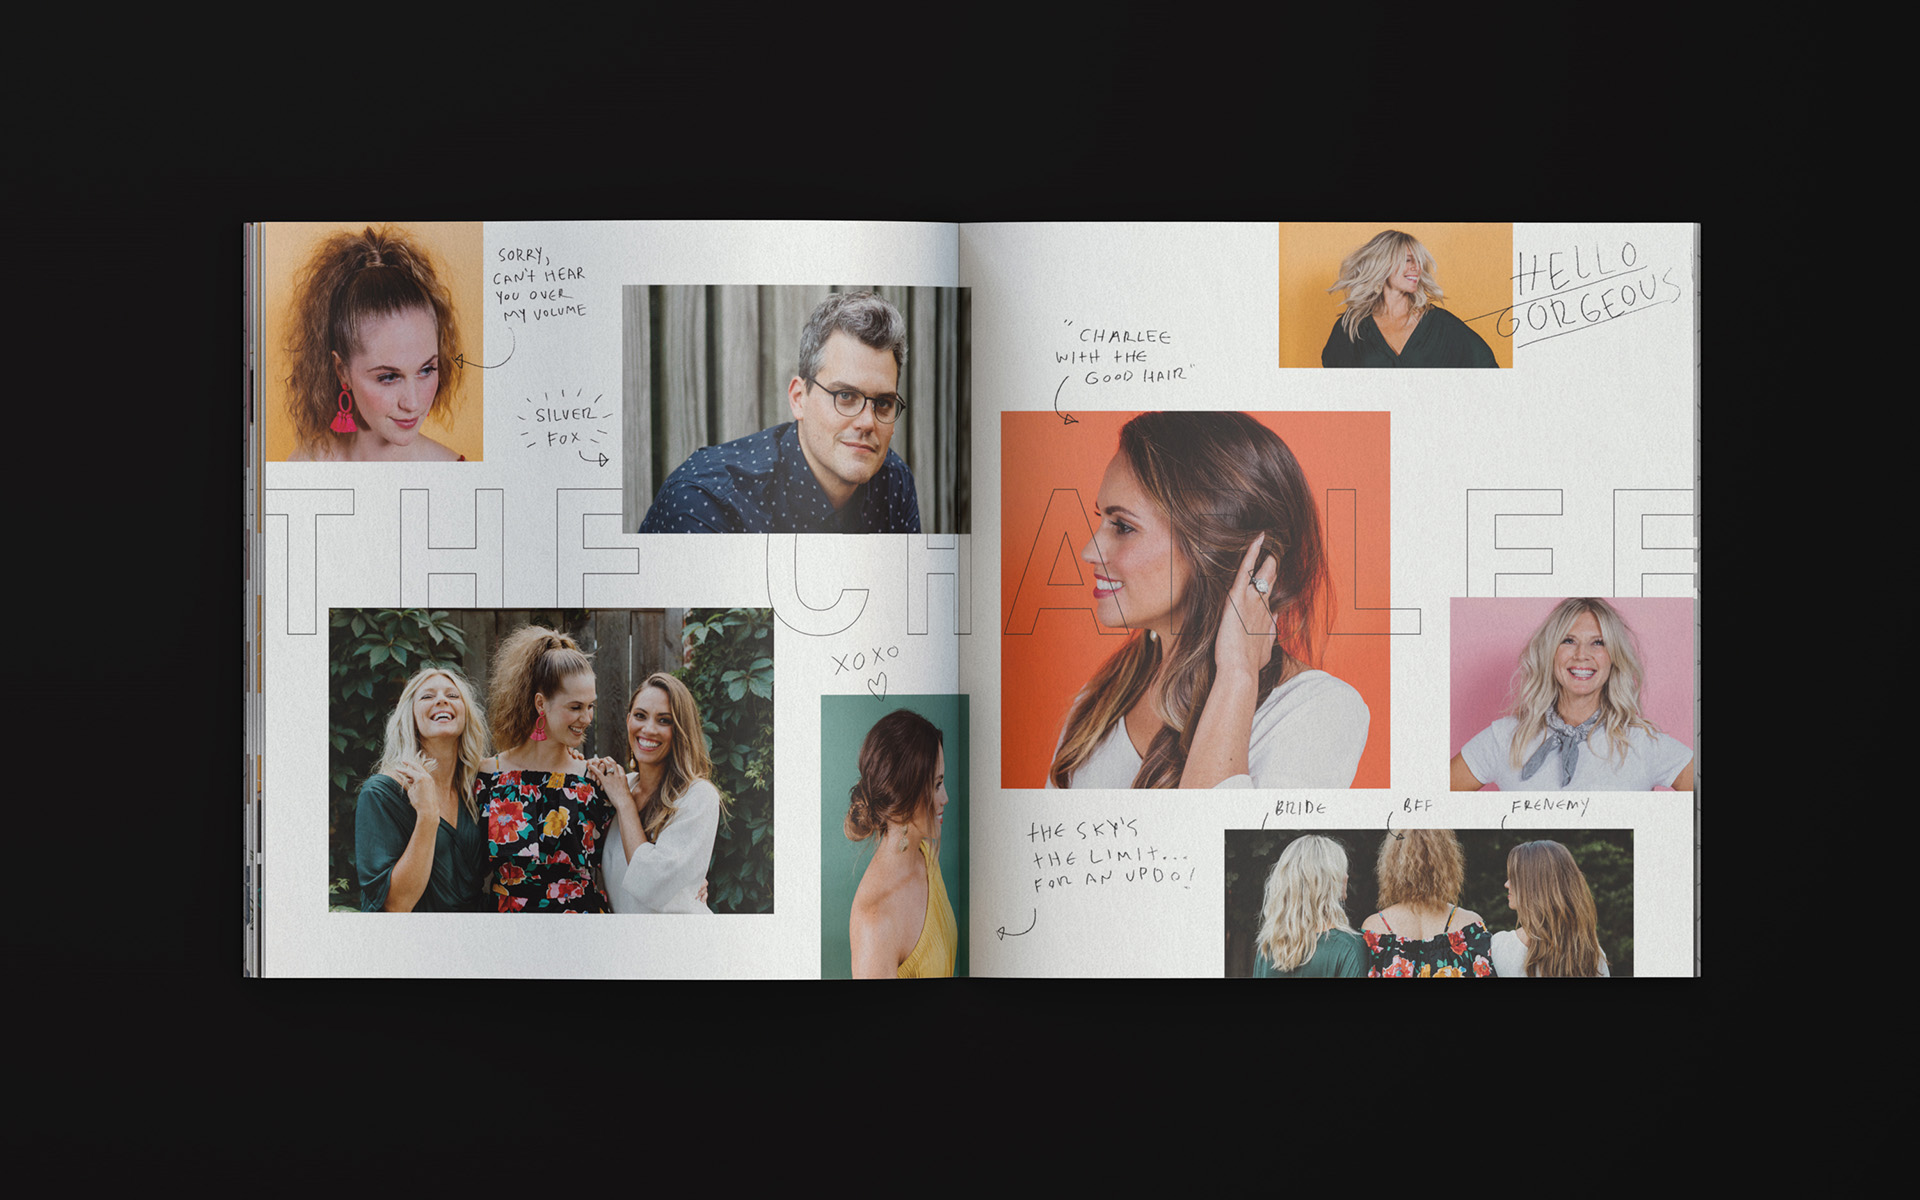 Inside spread of The Charlee salon's brochure featuring multiple images of attractive millennials with good hair